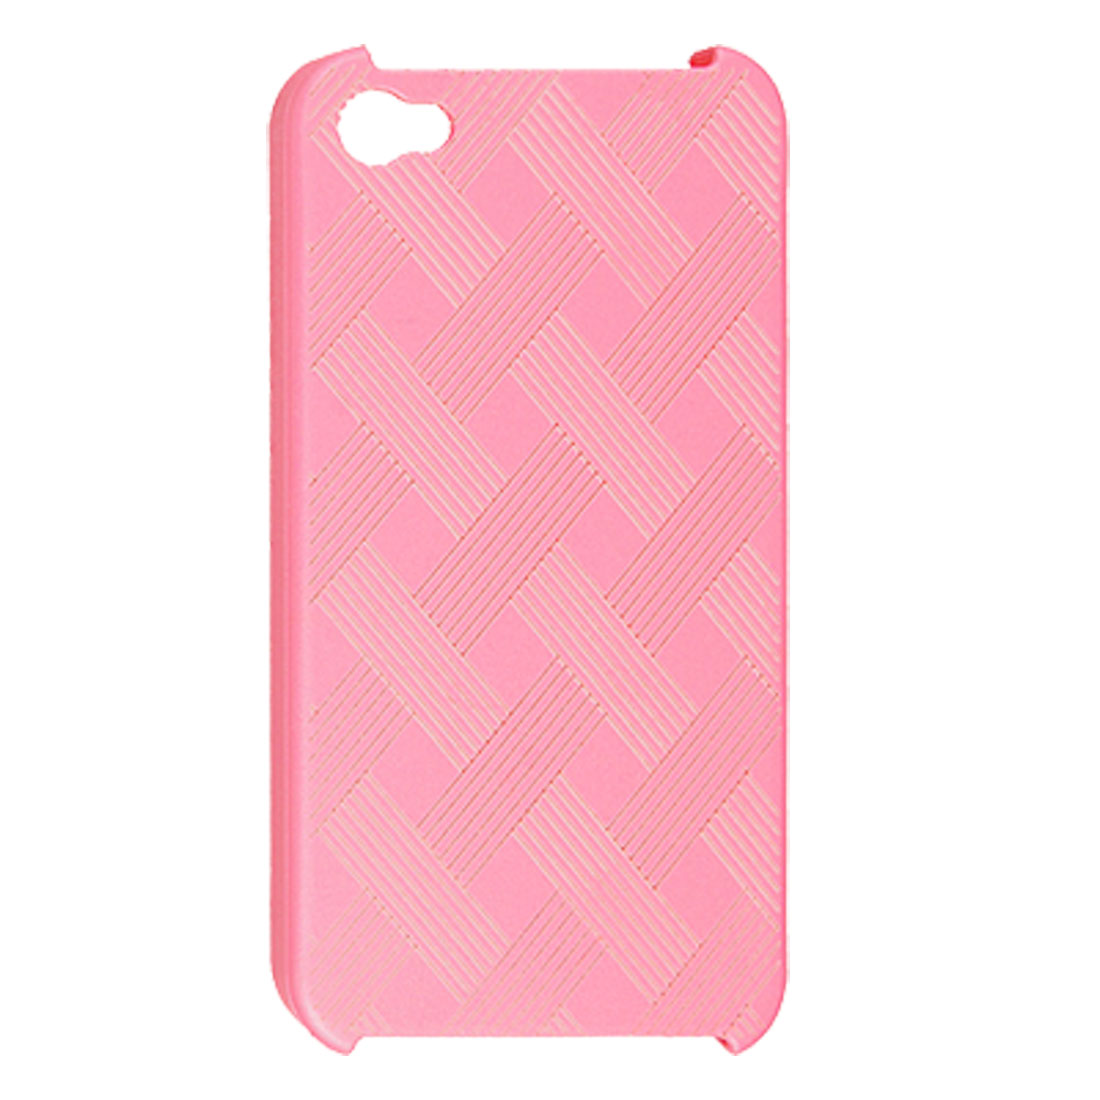 Intertwined Mesh Stripe Design Pink Back Shell Cover for iPhone 4S